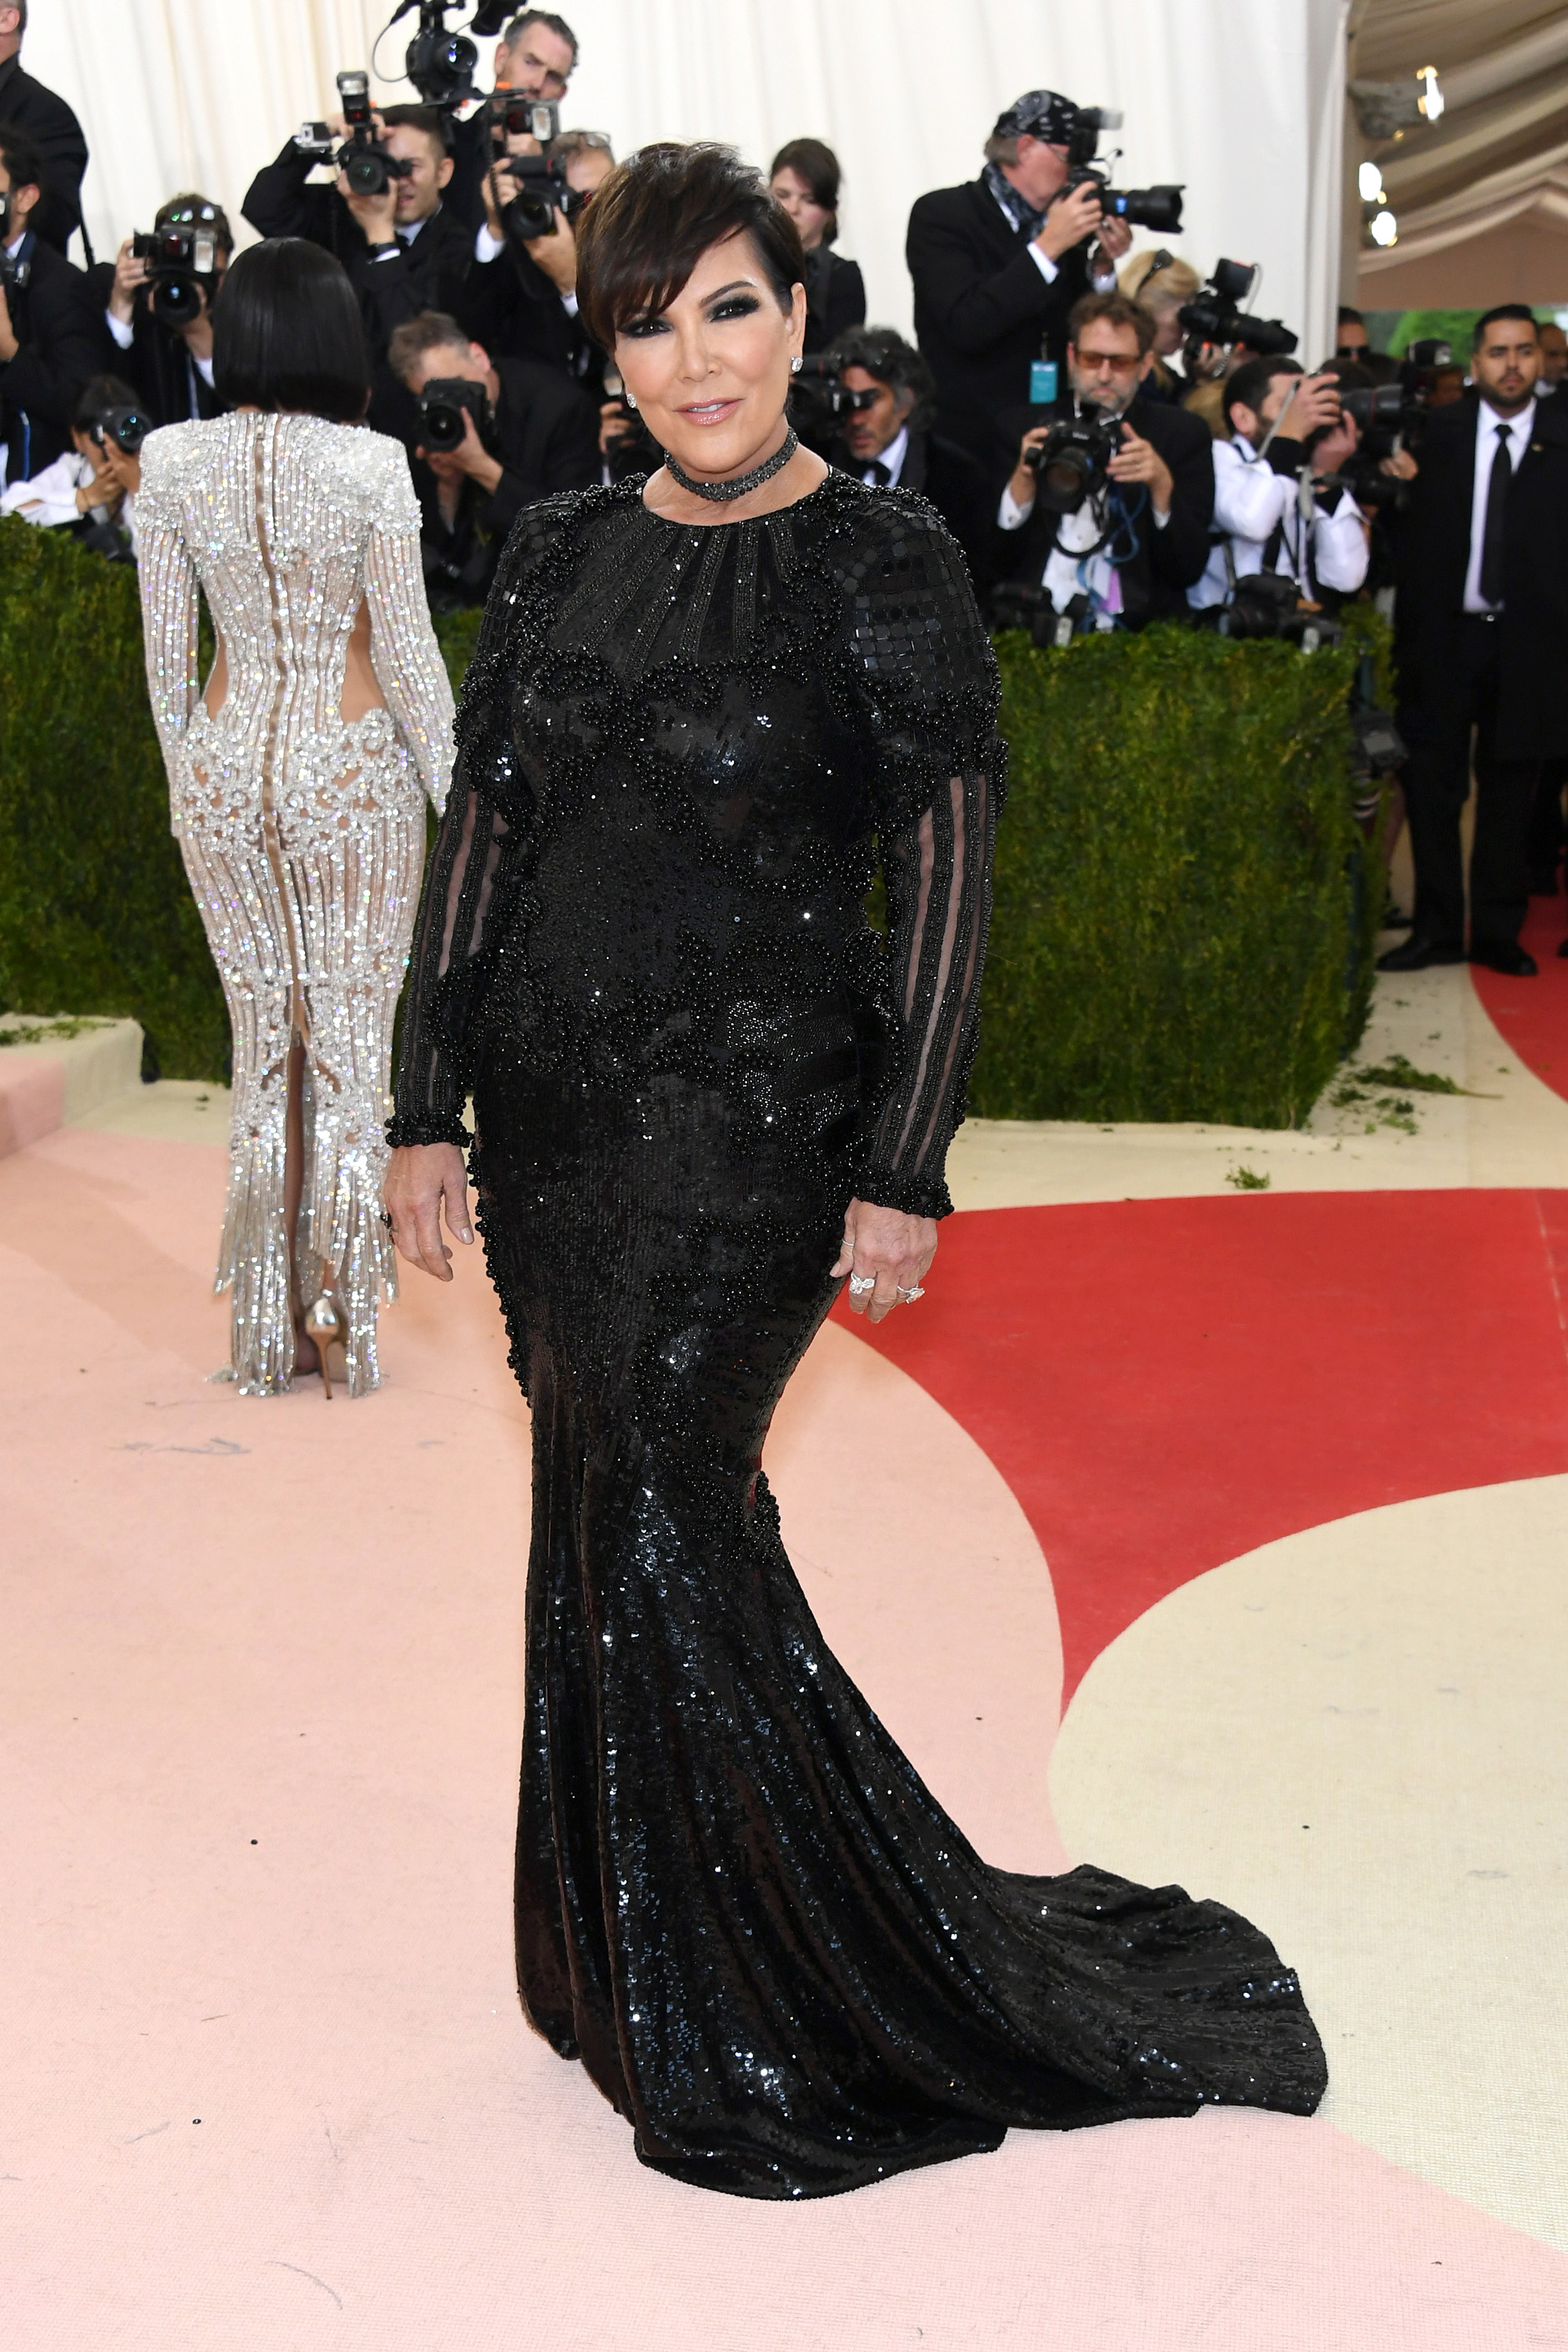 Kris Jenner attends  Manus x Machina: Fashion In An Age Of Technology  Costume Institute Gala at Metropolitan Museum of Art on May 2, 2016 in New York City.